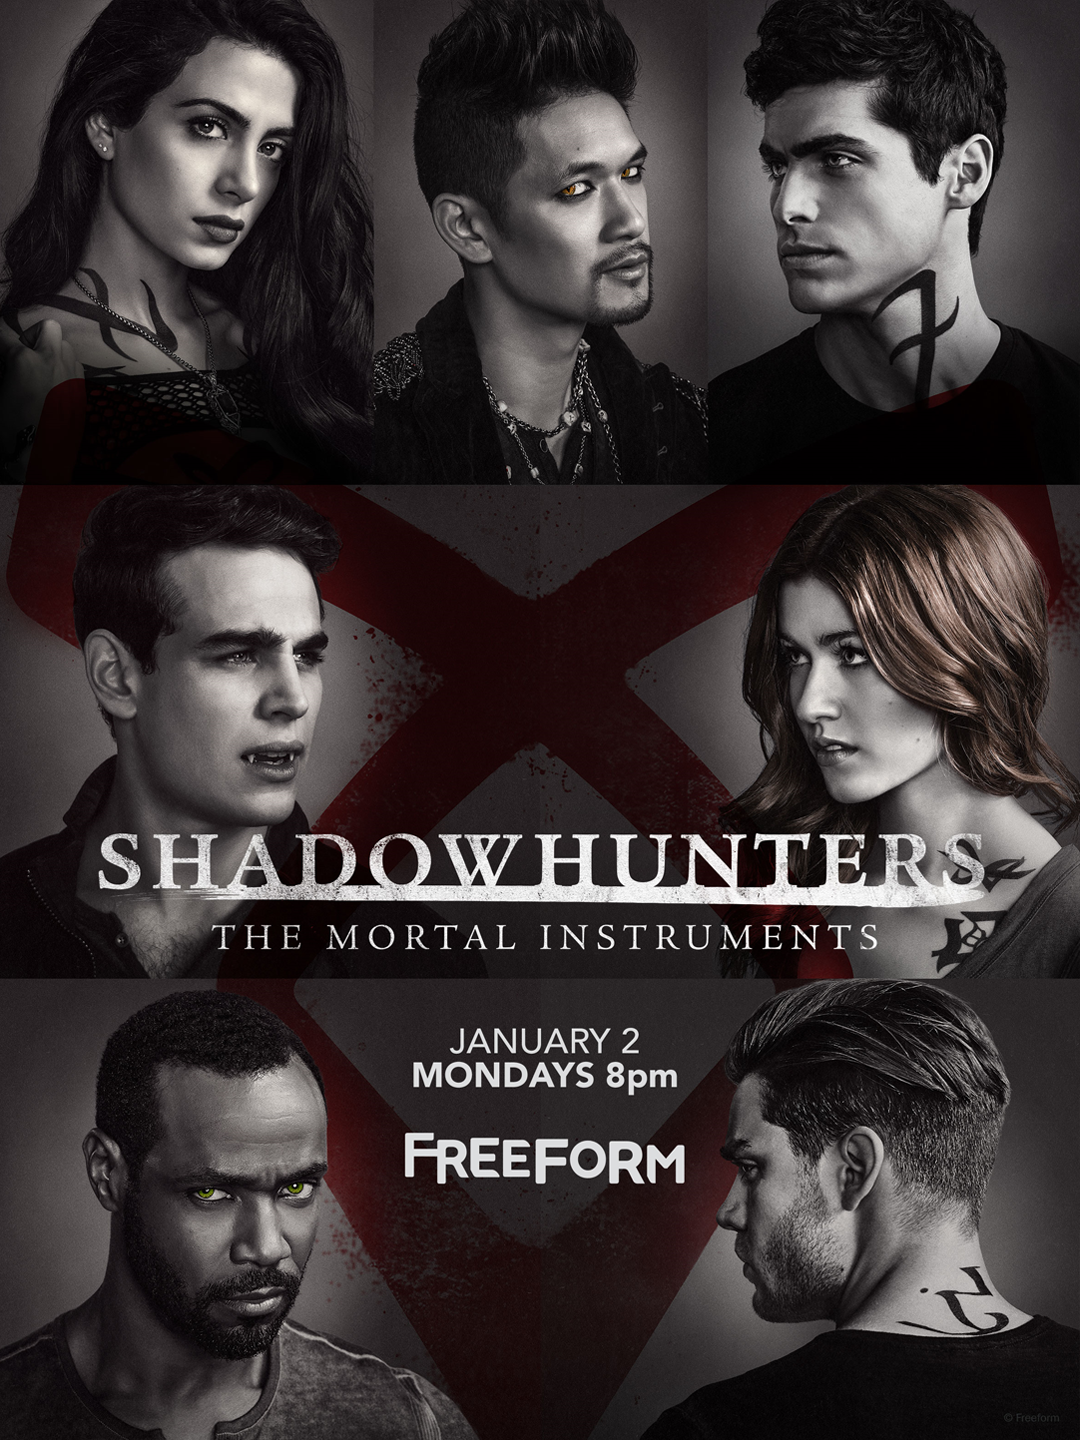 Shadowhunters review list!